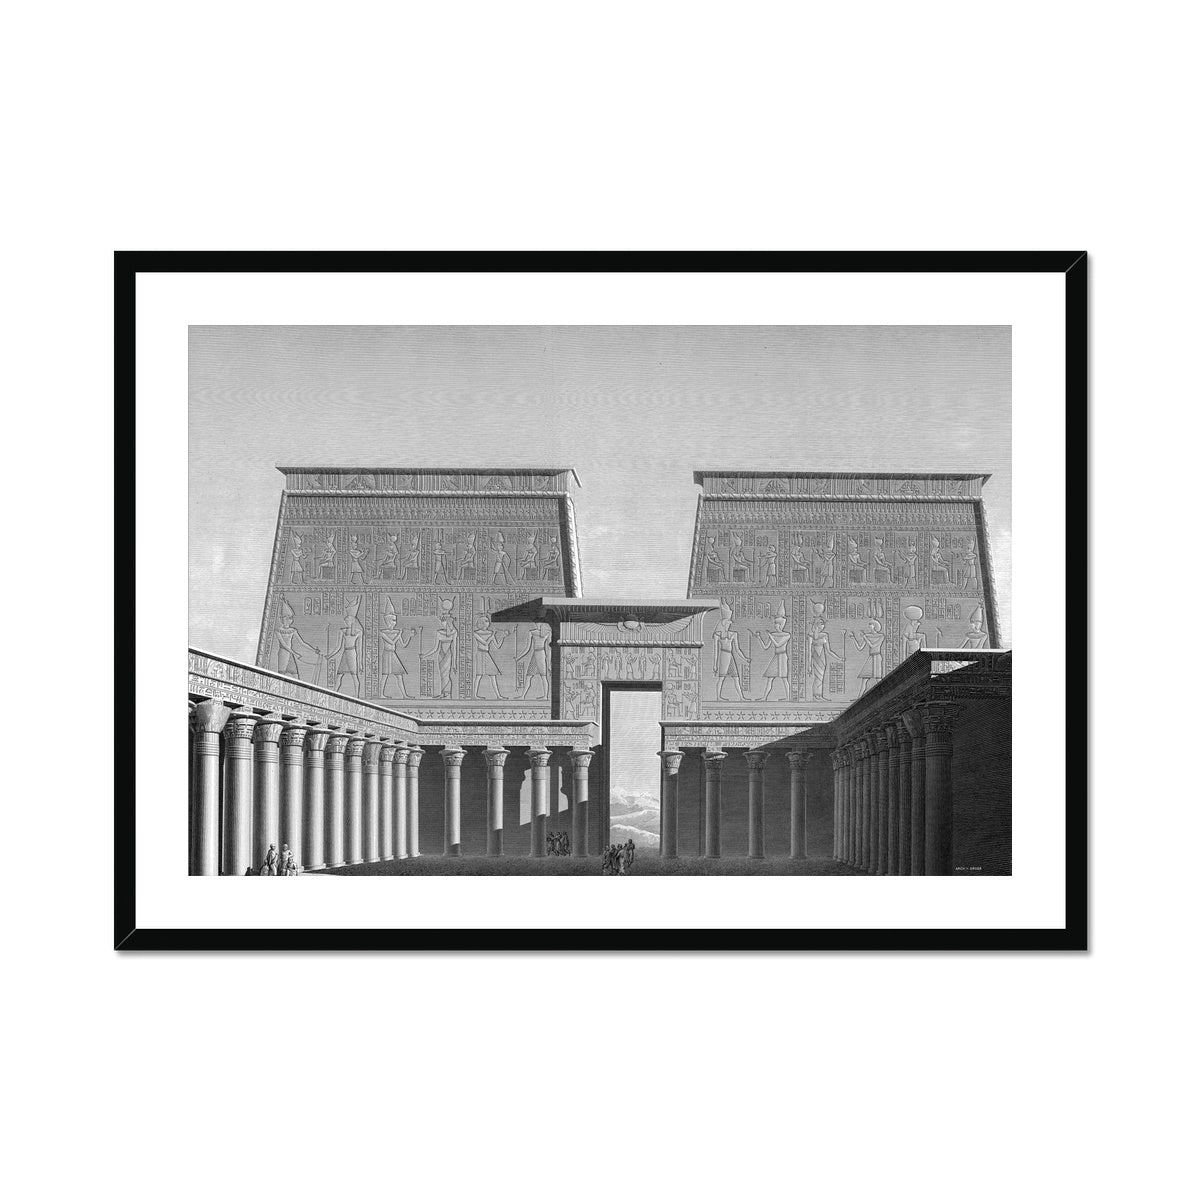 Temple of Horus Courtyard - Edfu Egypt -  Framed & Mounted Print